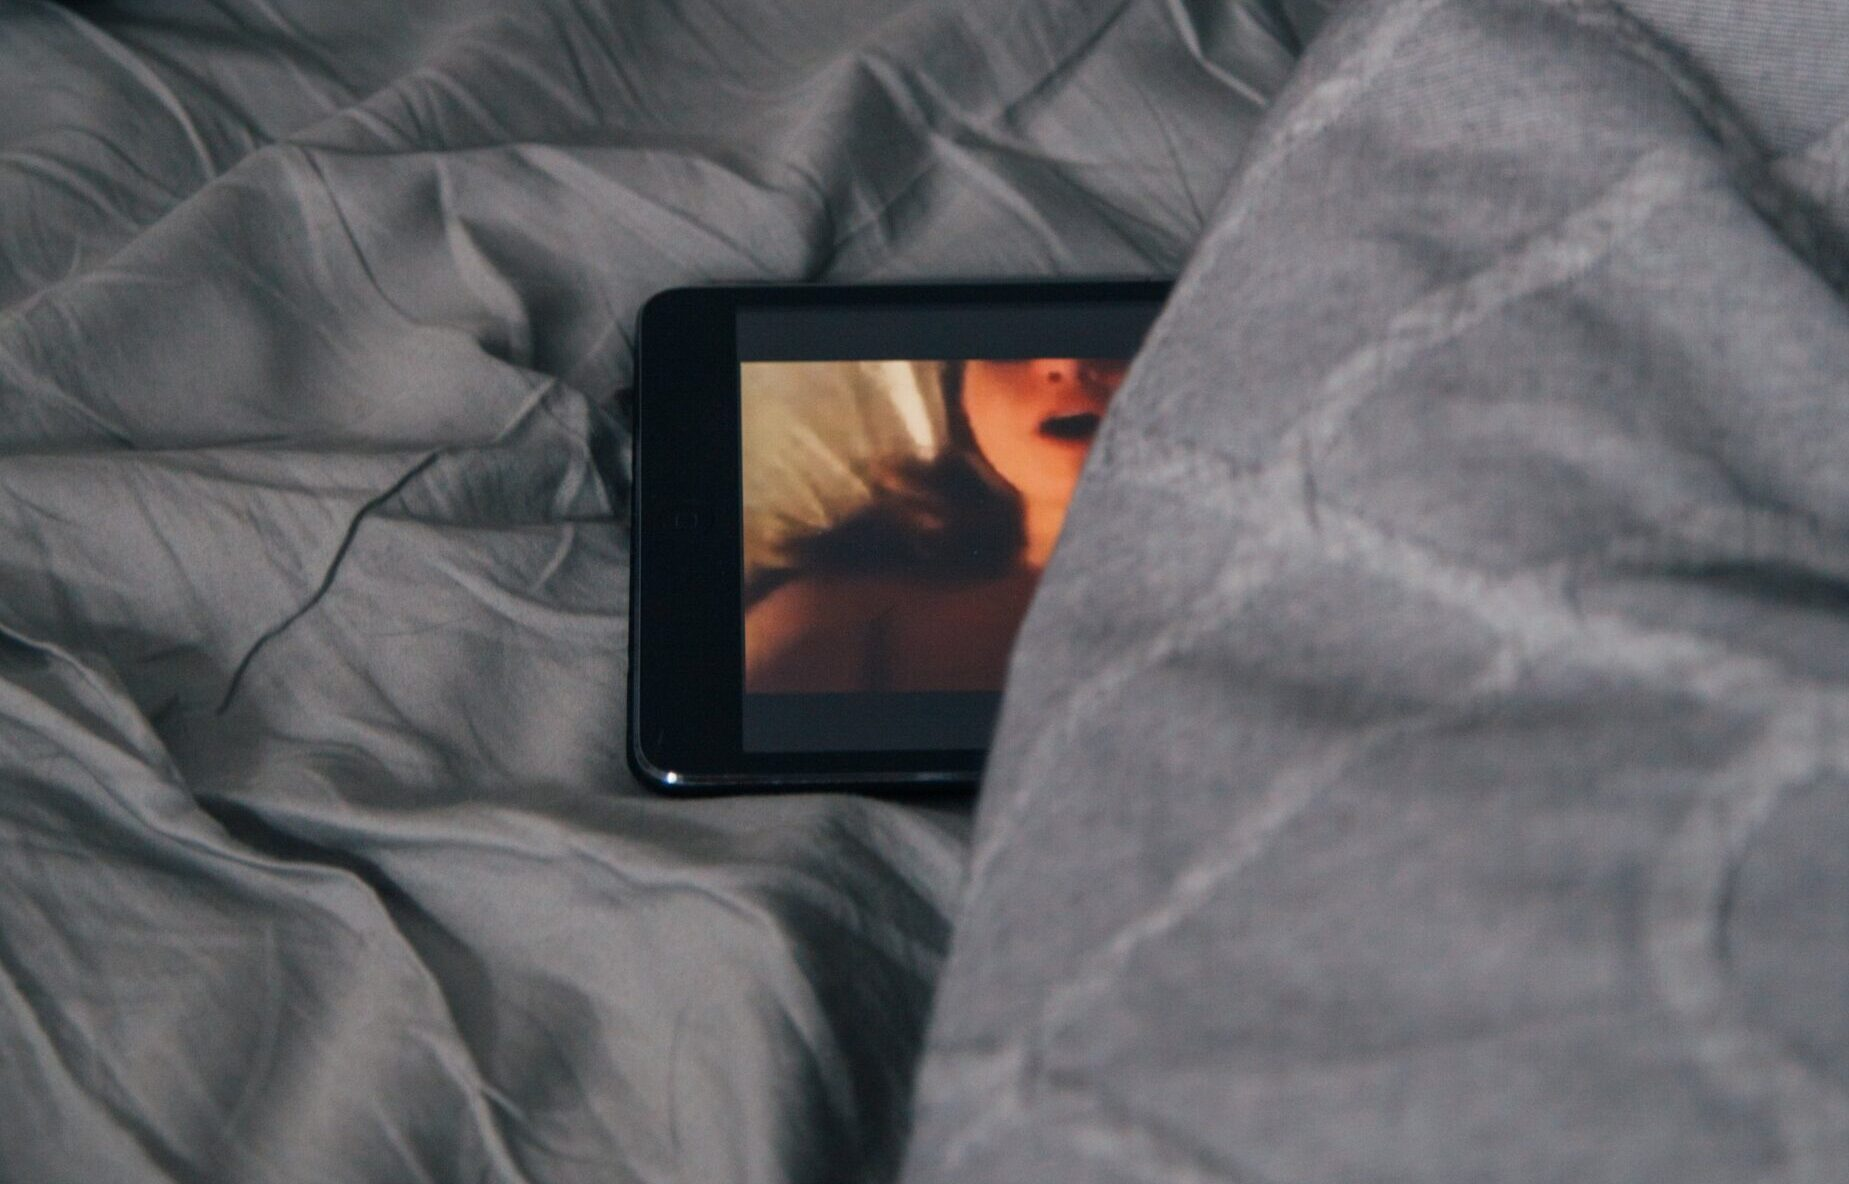 Study: 1 in 8 Young Adults Say Watching Porn is a Form of Cheating